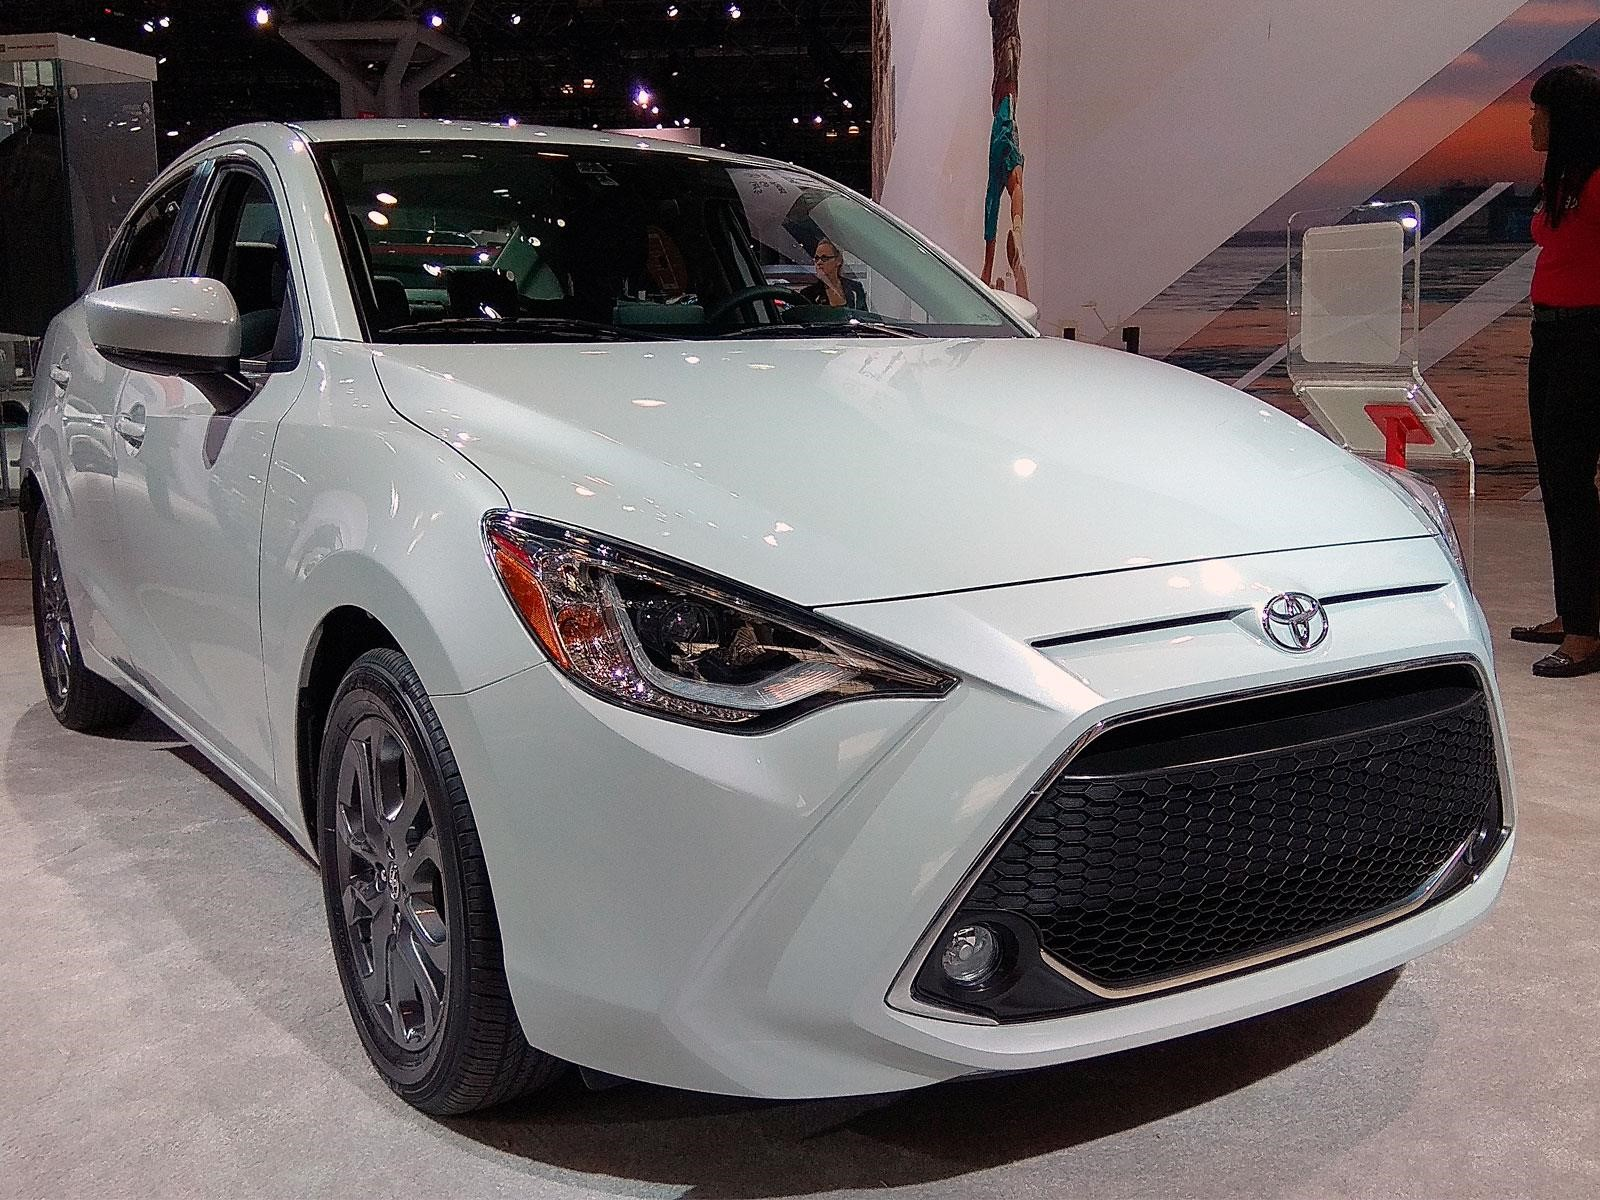 auto show de nueva york 2018 toyota yaris r 2019 recibe una ligera actualizaci n noticias. Black Bedroom Furniture Sets. Home Design Ideas